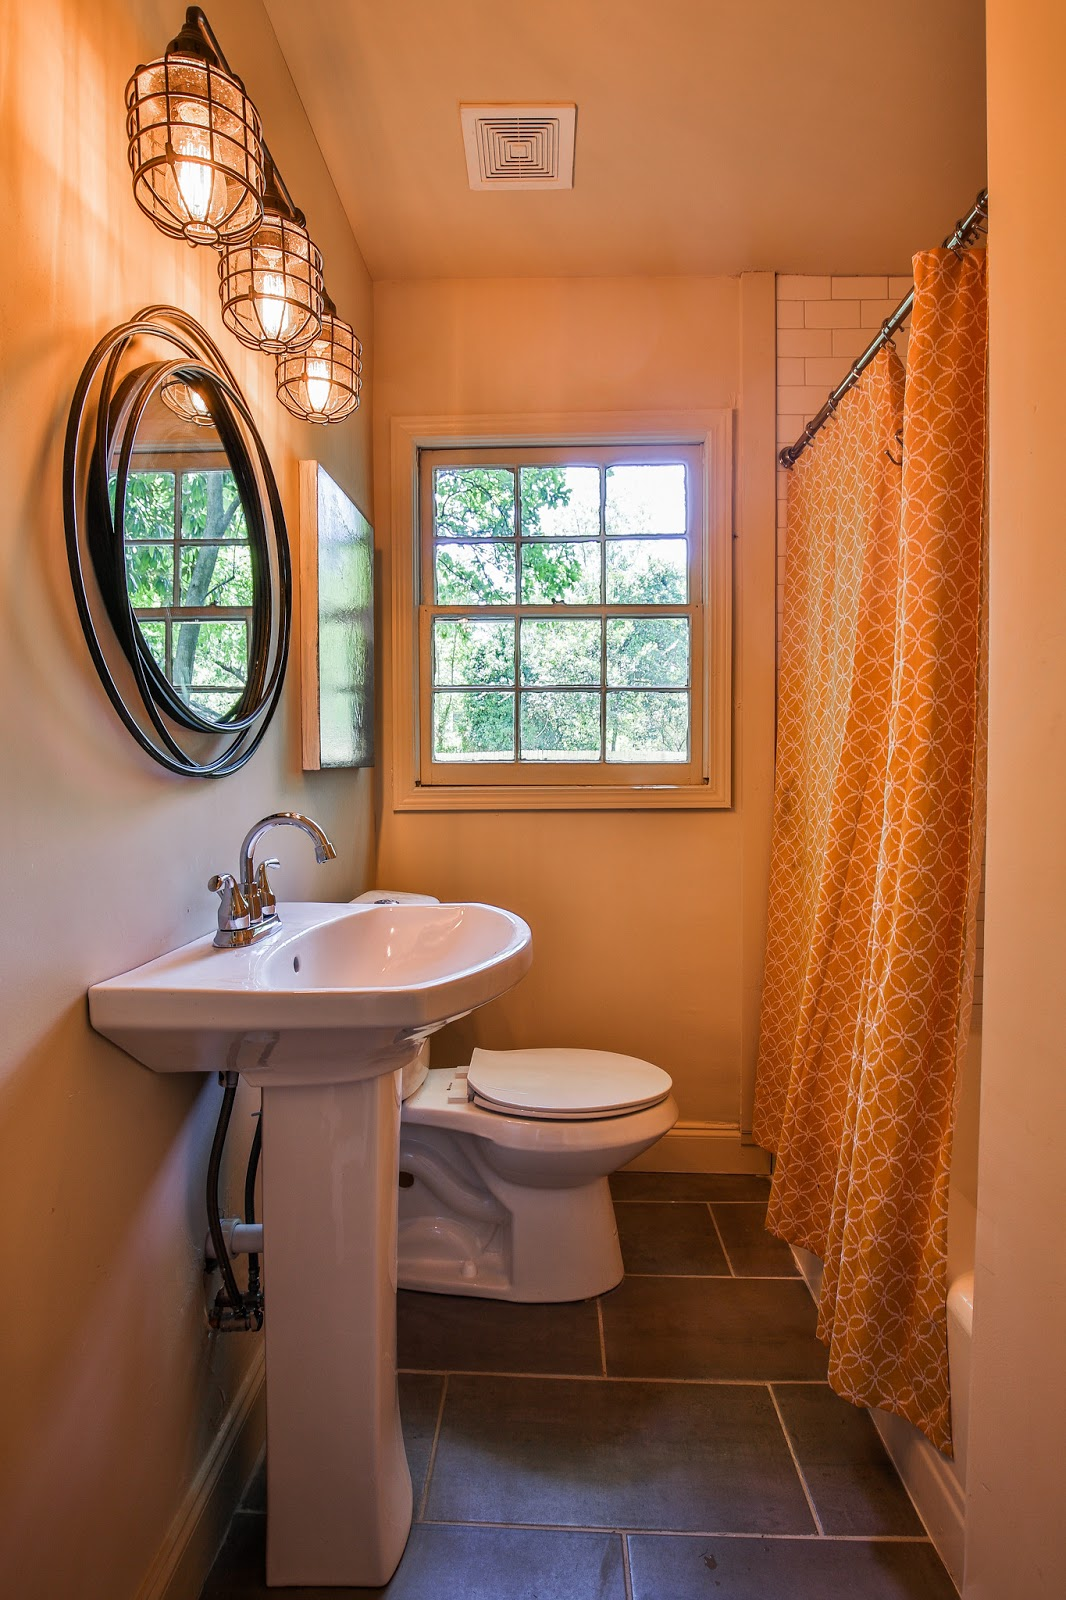 Plumbing by Kohler, Lighting by Savoy House